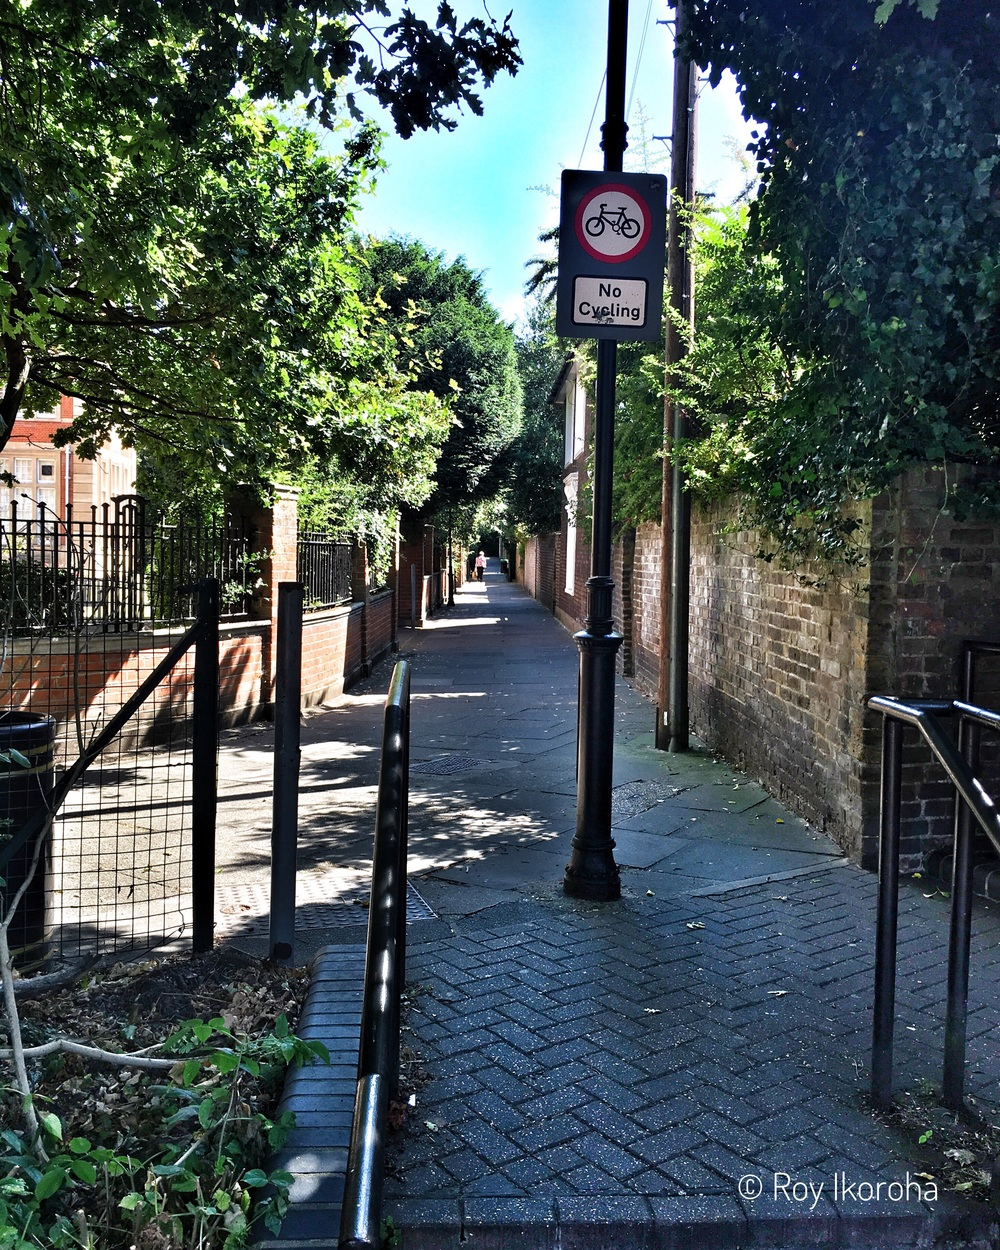 Pathway, Enfield Town, London